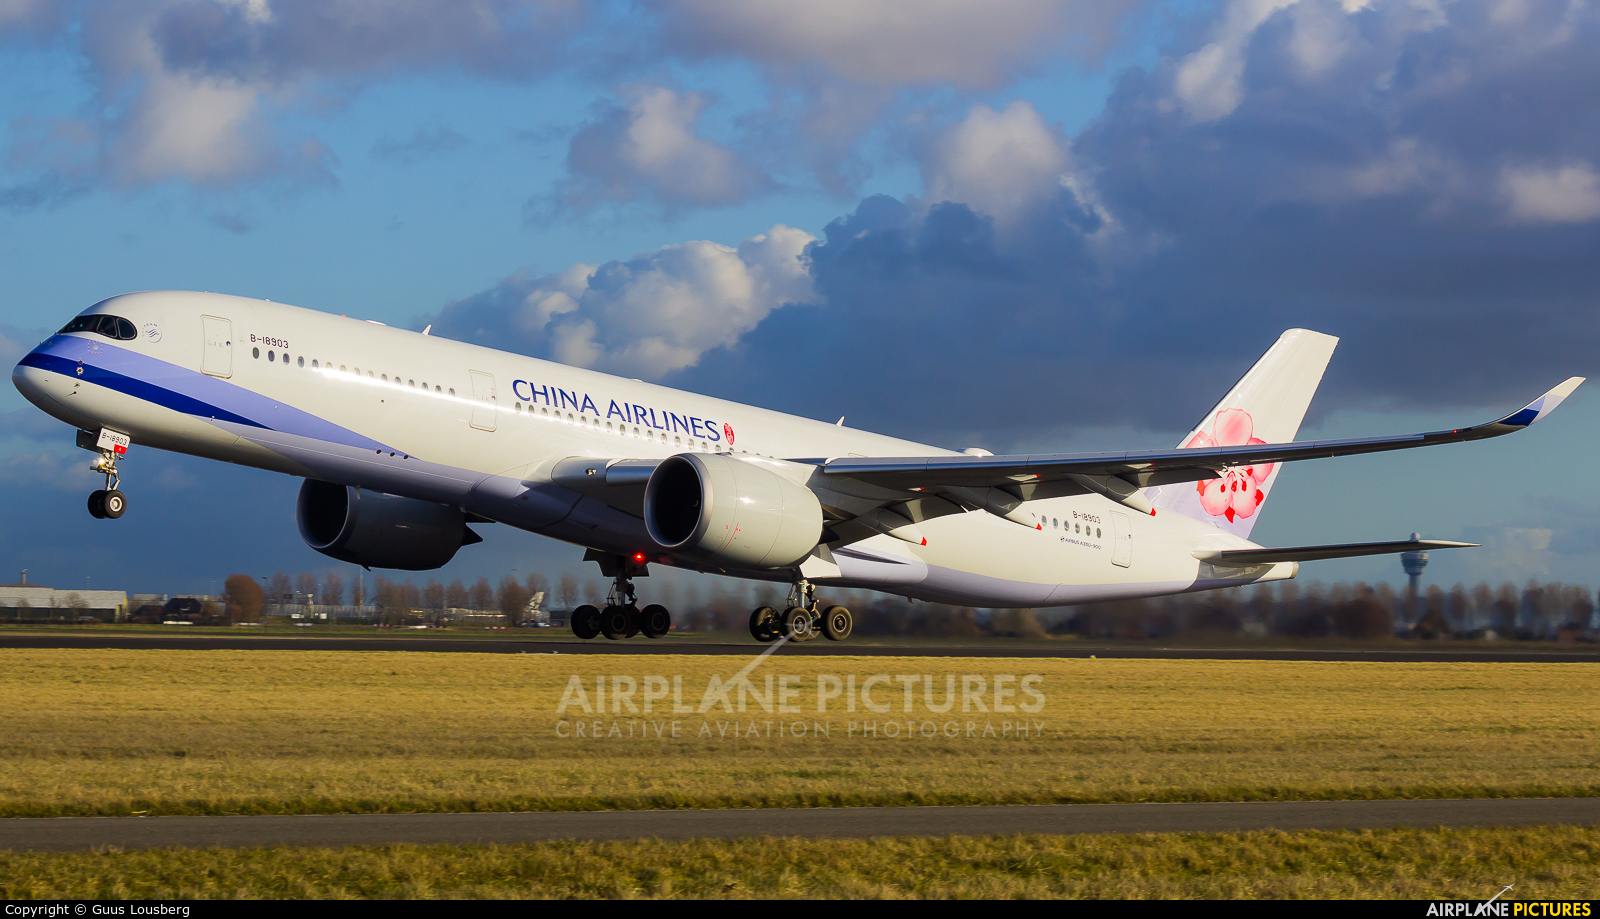 B-18903 - China Airlines Airbus A350-900 At Amsterdam - Schiphol